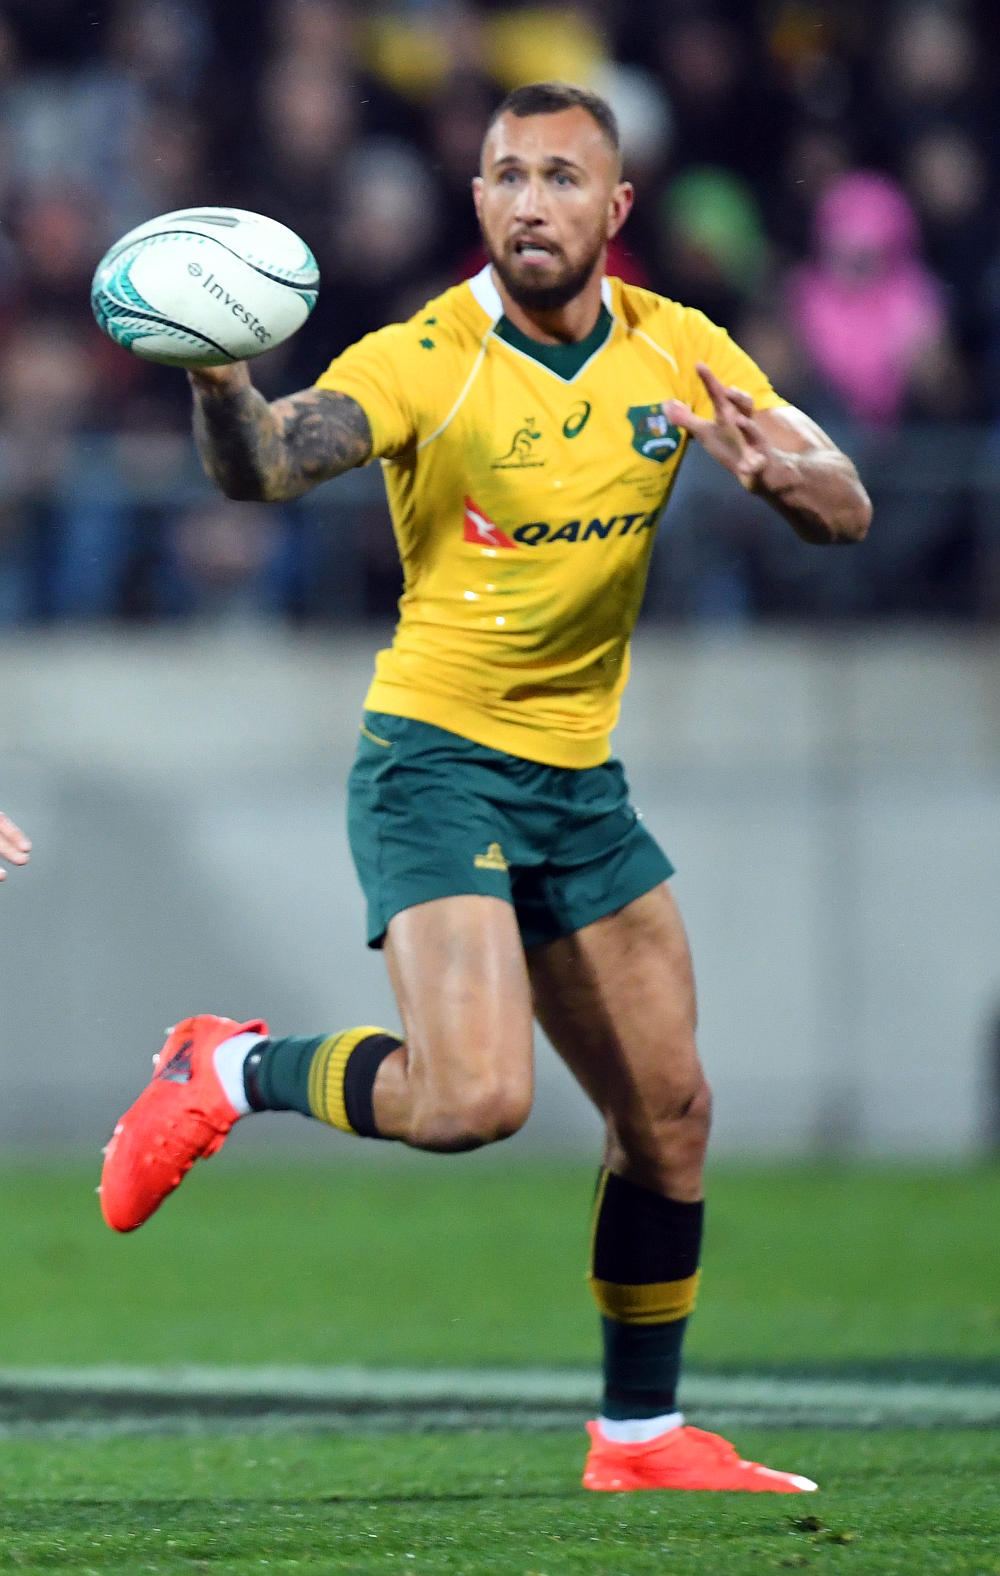 Quade Cooper Australia Rugby Union Wallabies Test Rugby Rugby Championship Bledisloe Cup 2016 tall